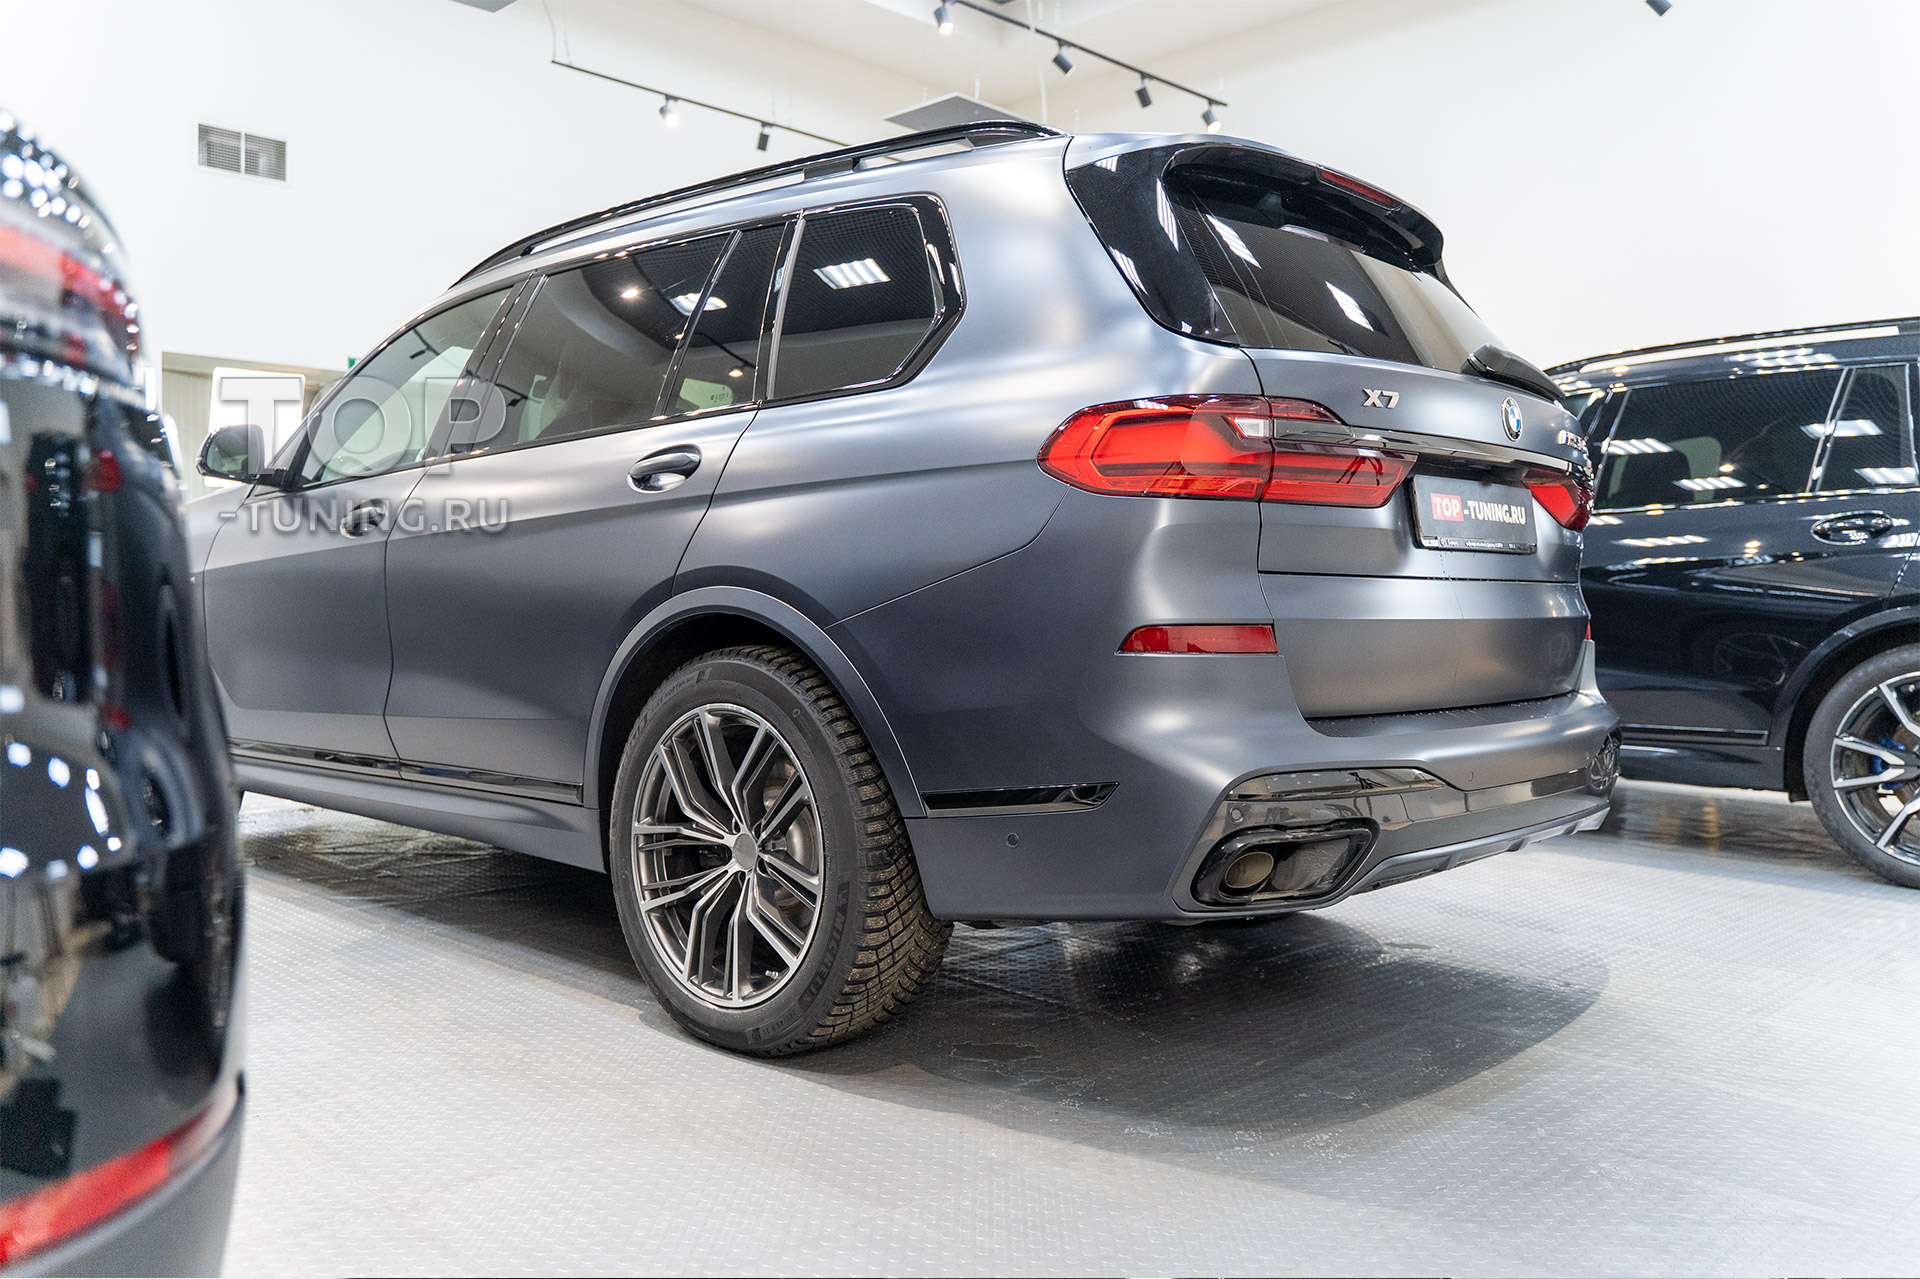 BMW X7 Dark Shadow Edition